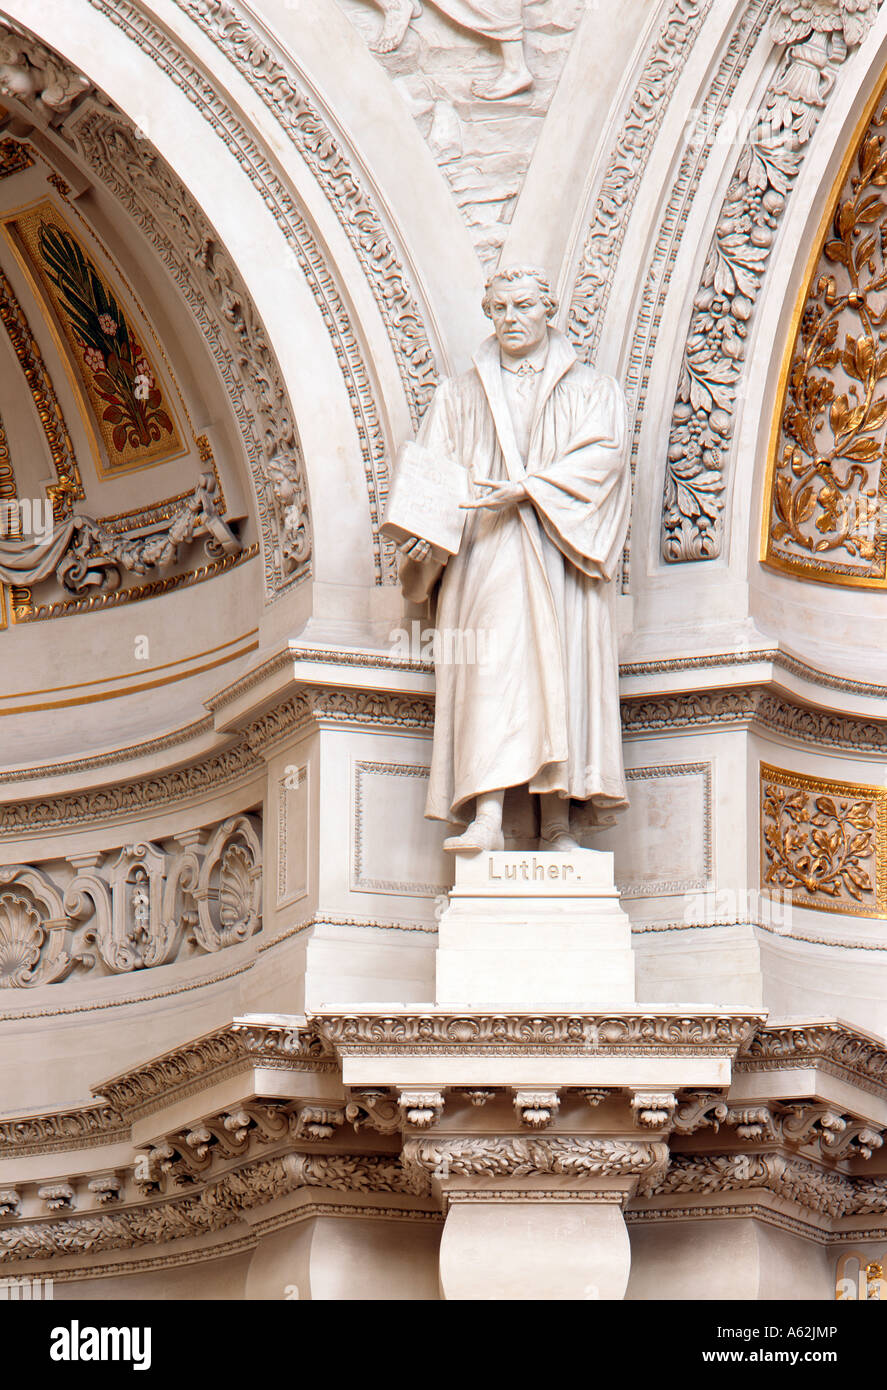 Berlin, Dom, Luther-Statue - Stock Image